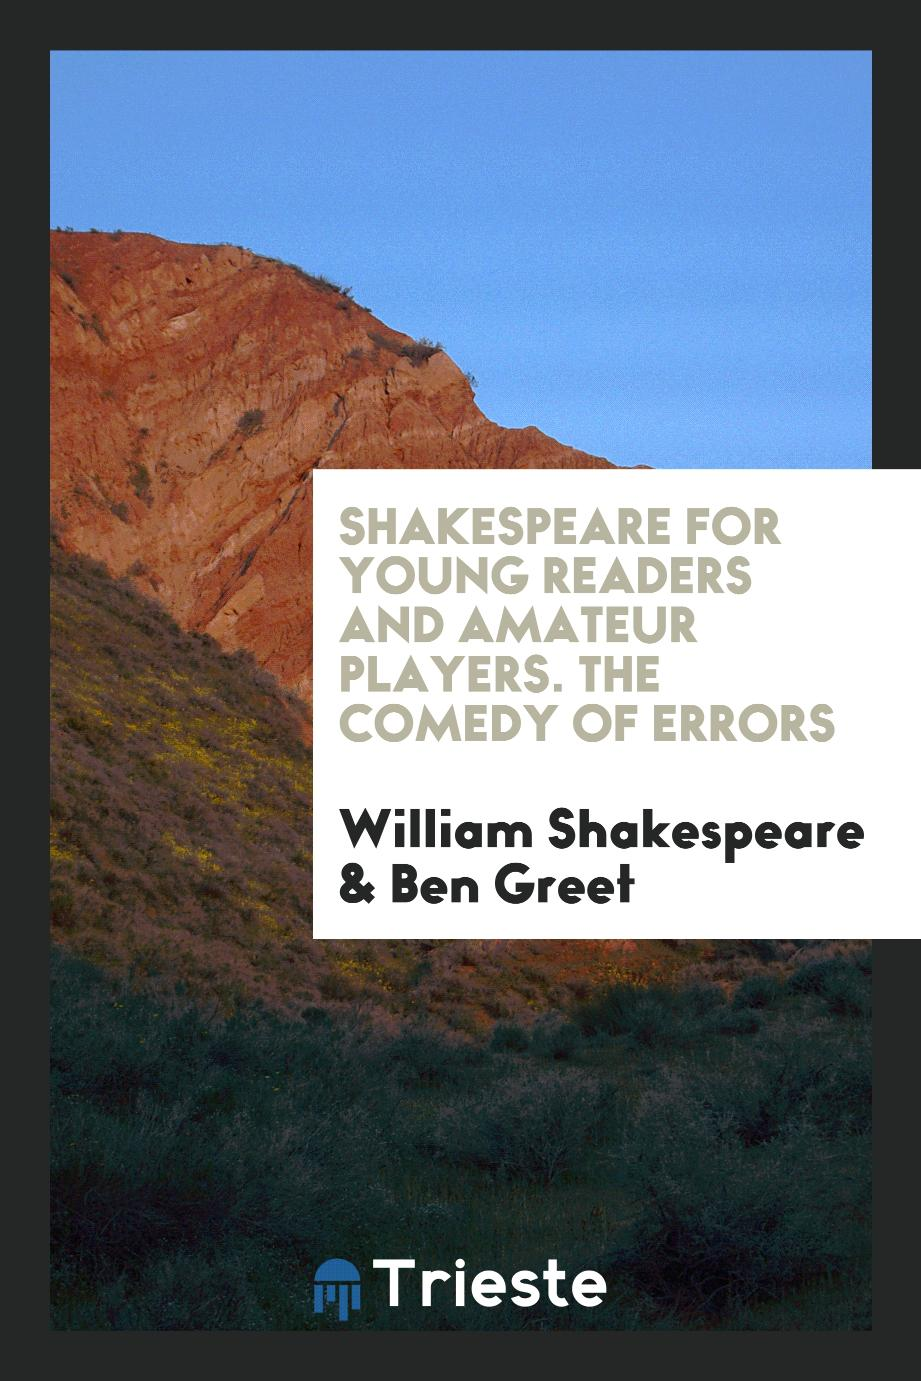 Shakespeare for young readers and amateur players. The comedy of errors